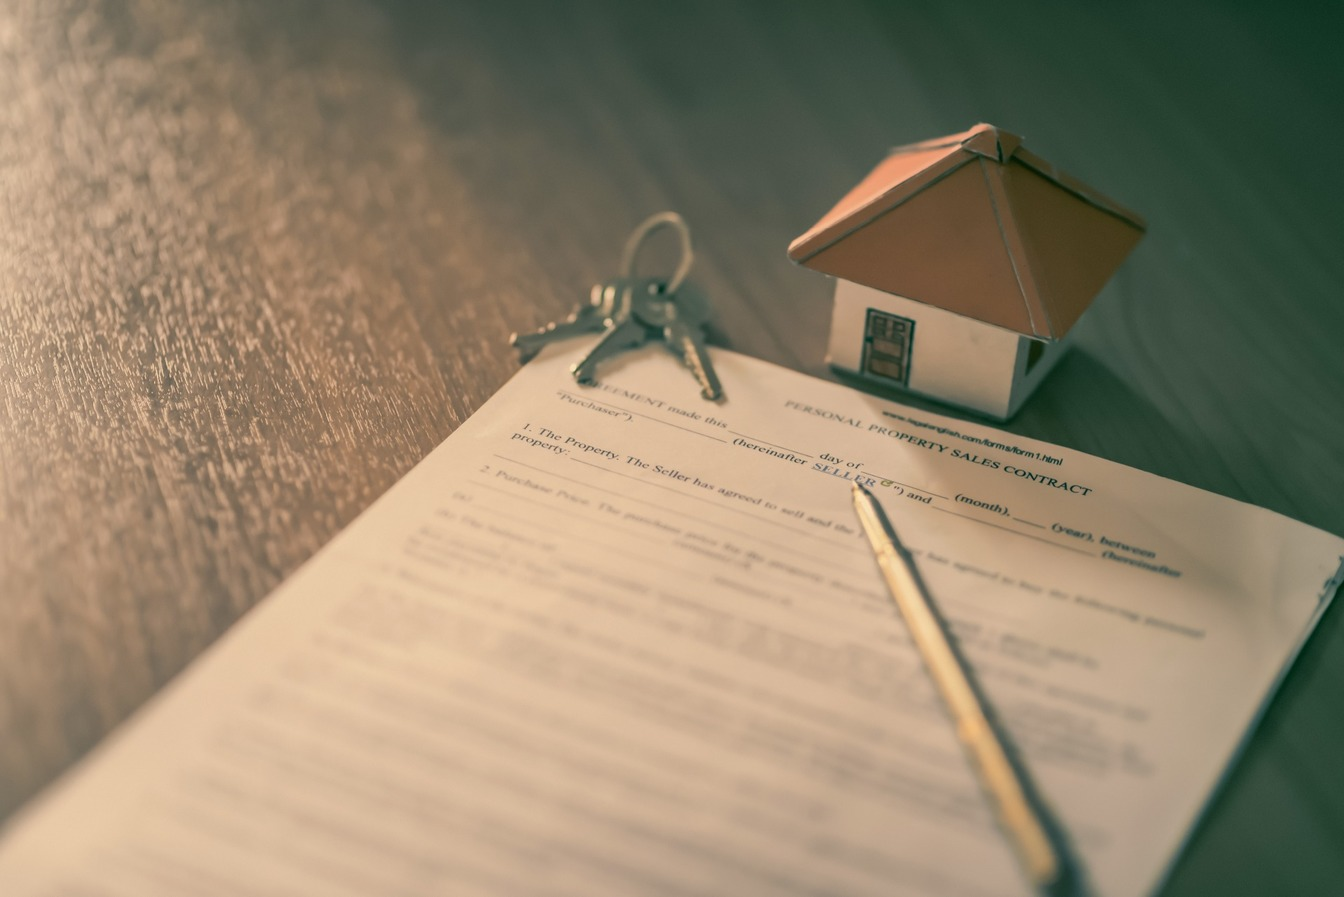 A Property Sales Contract template, with a miniature cardboard house and a set of keys.